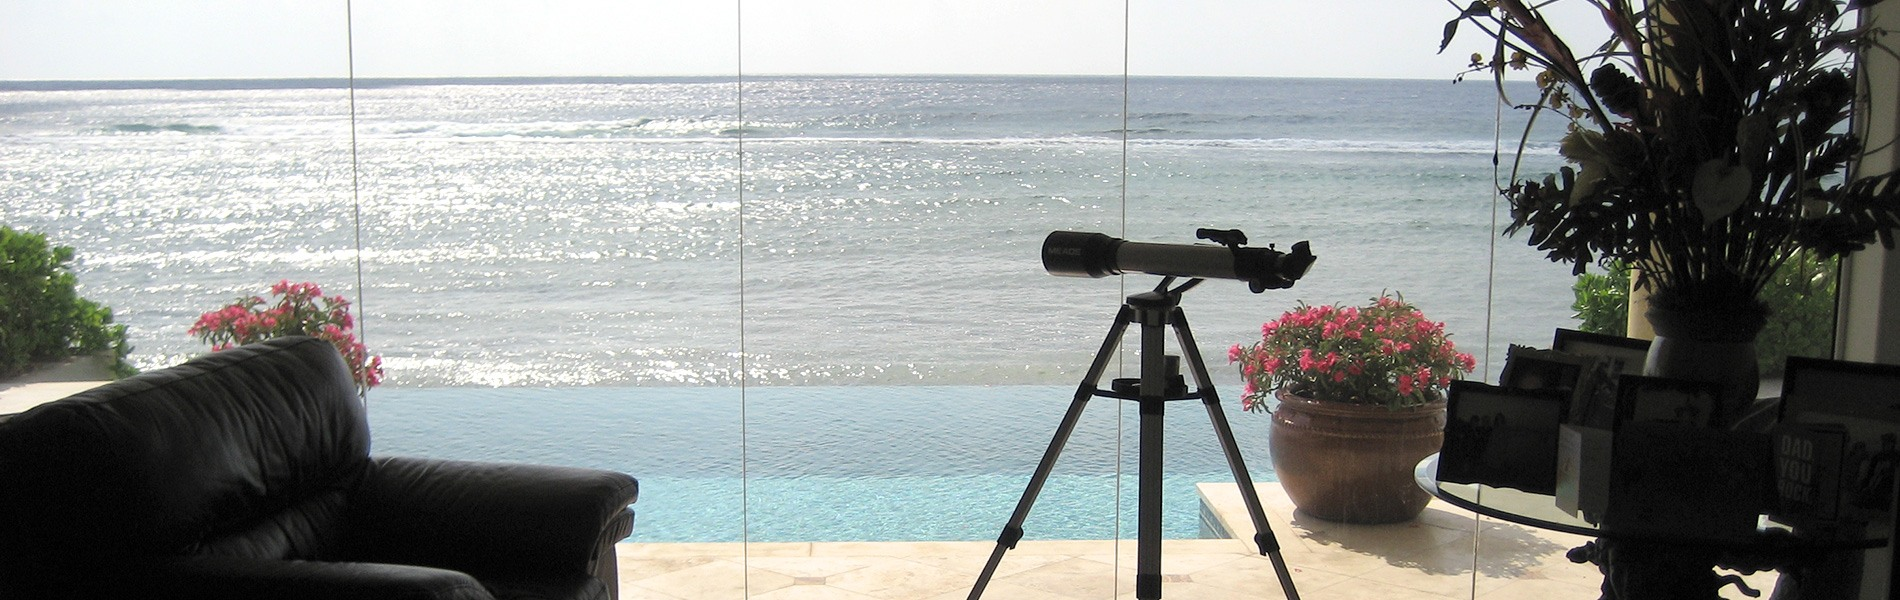 Private estate Cayman Islands - reference for window production in Germany